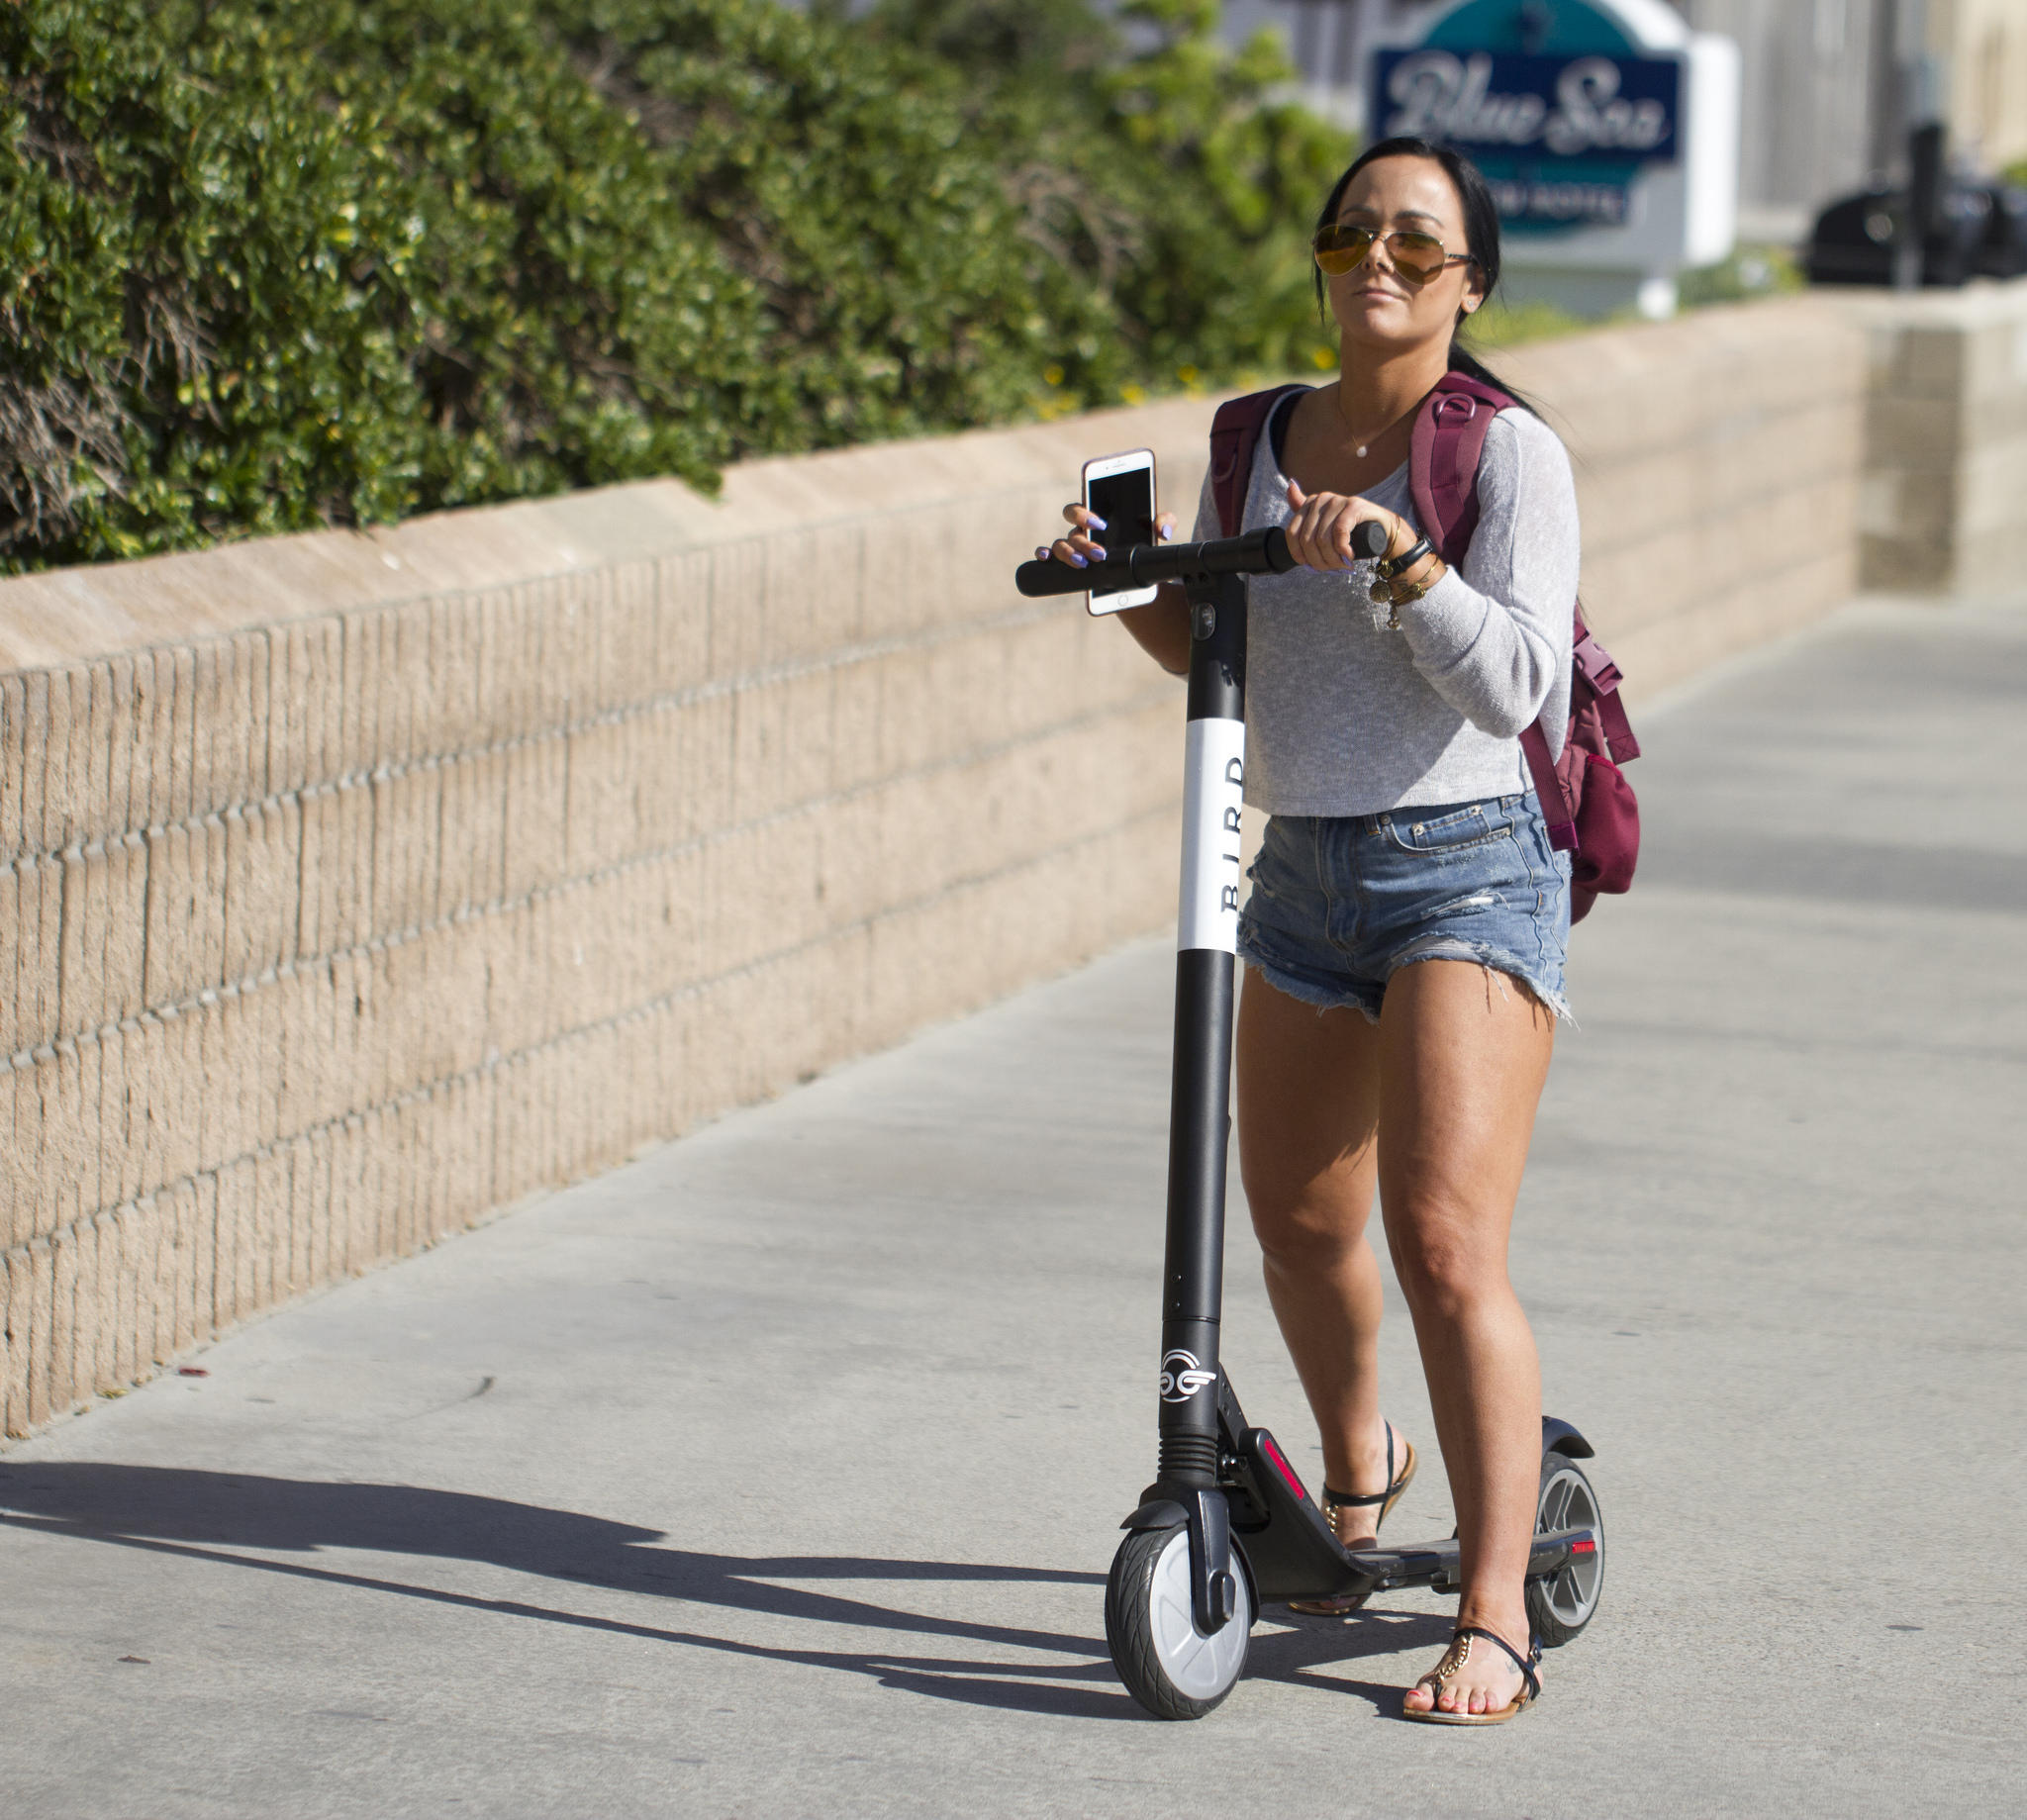 Rental Companies San Francisco: E-scooters May Be Coming To San Luis Obispo, But Not This